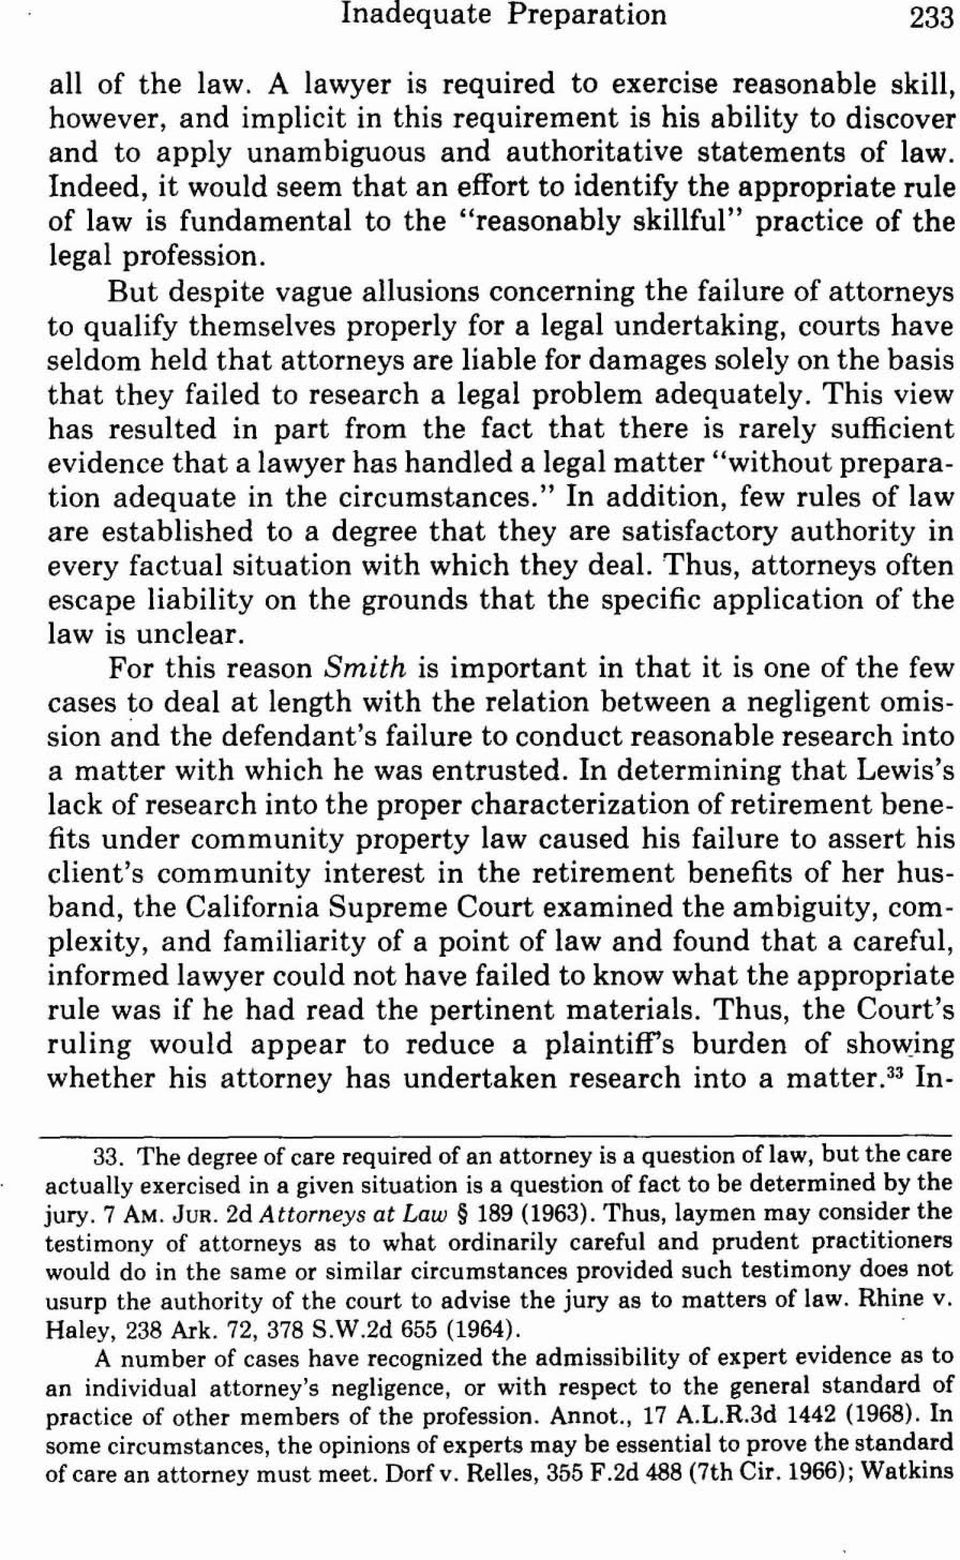 "Indeed, it would seem that an effort to identify the appropriate rule of law is fundamental to the ""reasonably skillful"" practice of the legal profession."